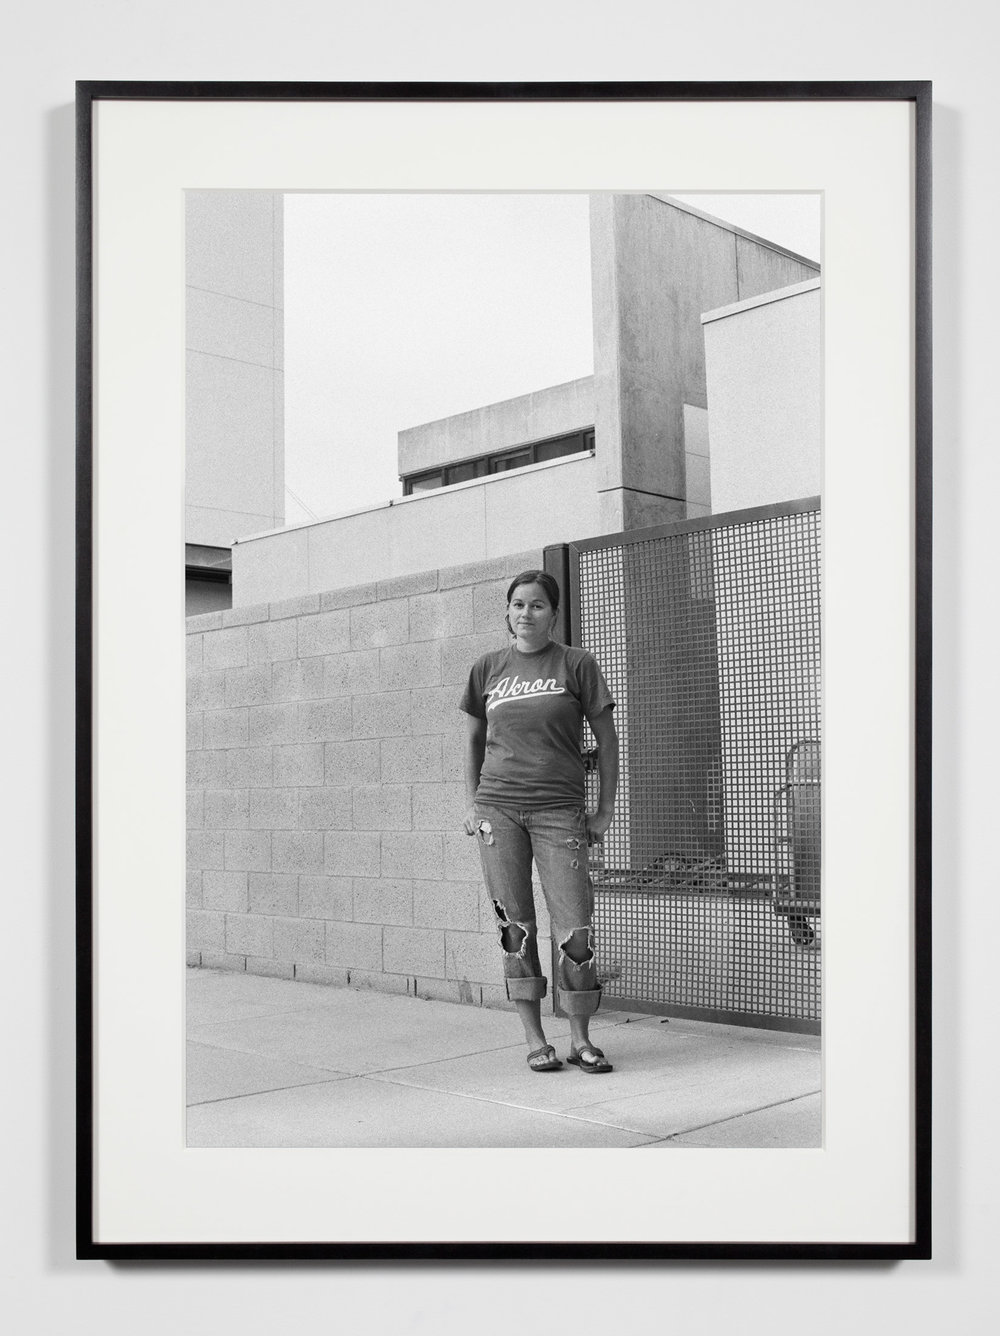 Darkroom Assistant, Irvine, California, September 14, 2009   2011  Epson Ultrachrome K3 archival ink jet print on Hahnemühle Photo Rag paper  36 3/8 x 26 3/8 inches   Industrial Portraits, 2008–    A Diagram of Forces, 2011